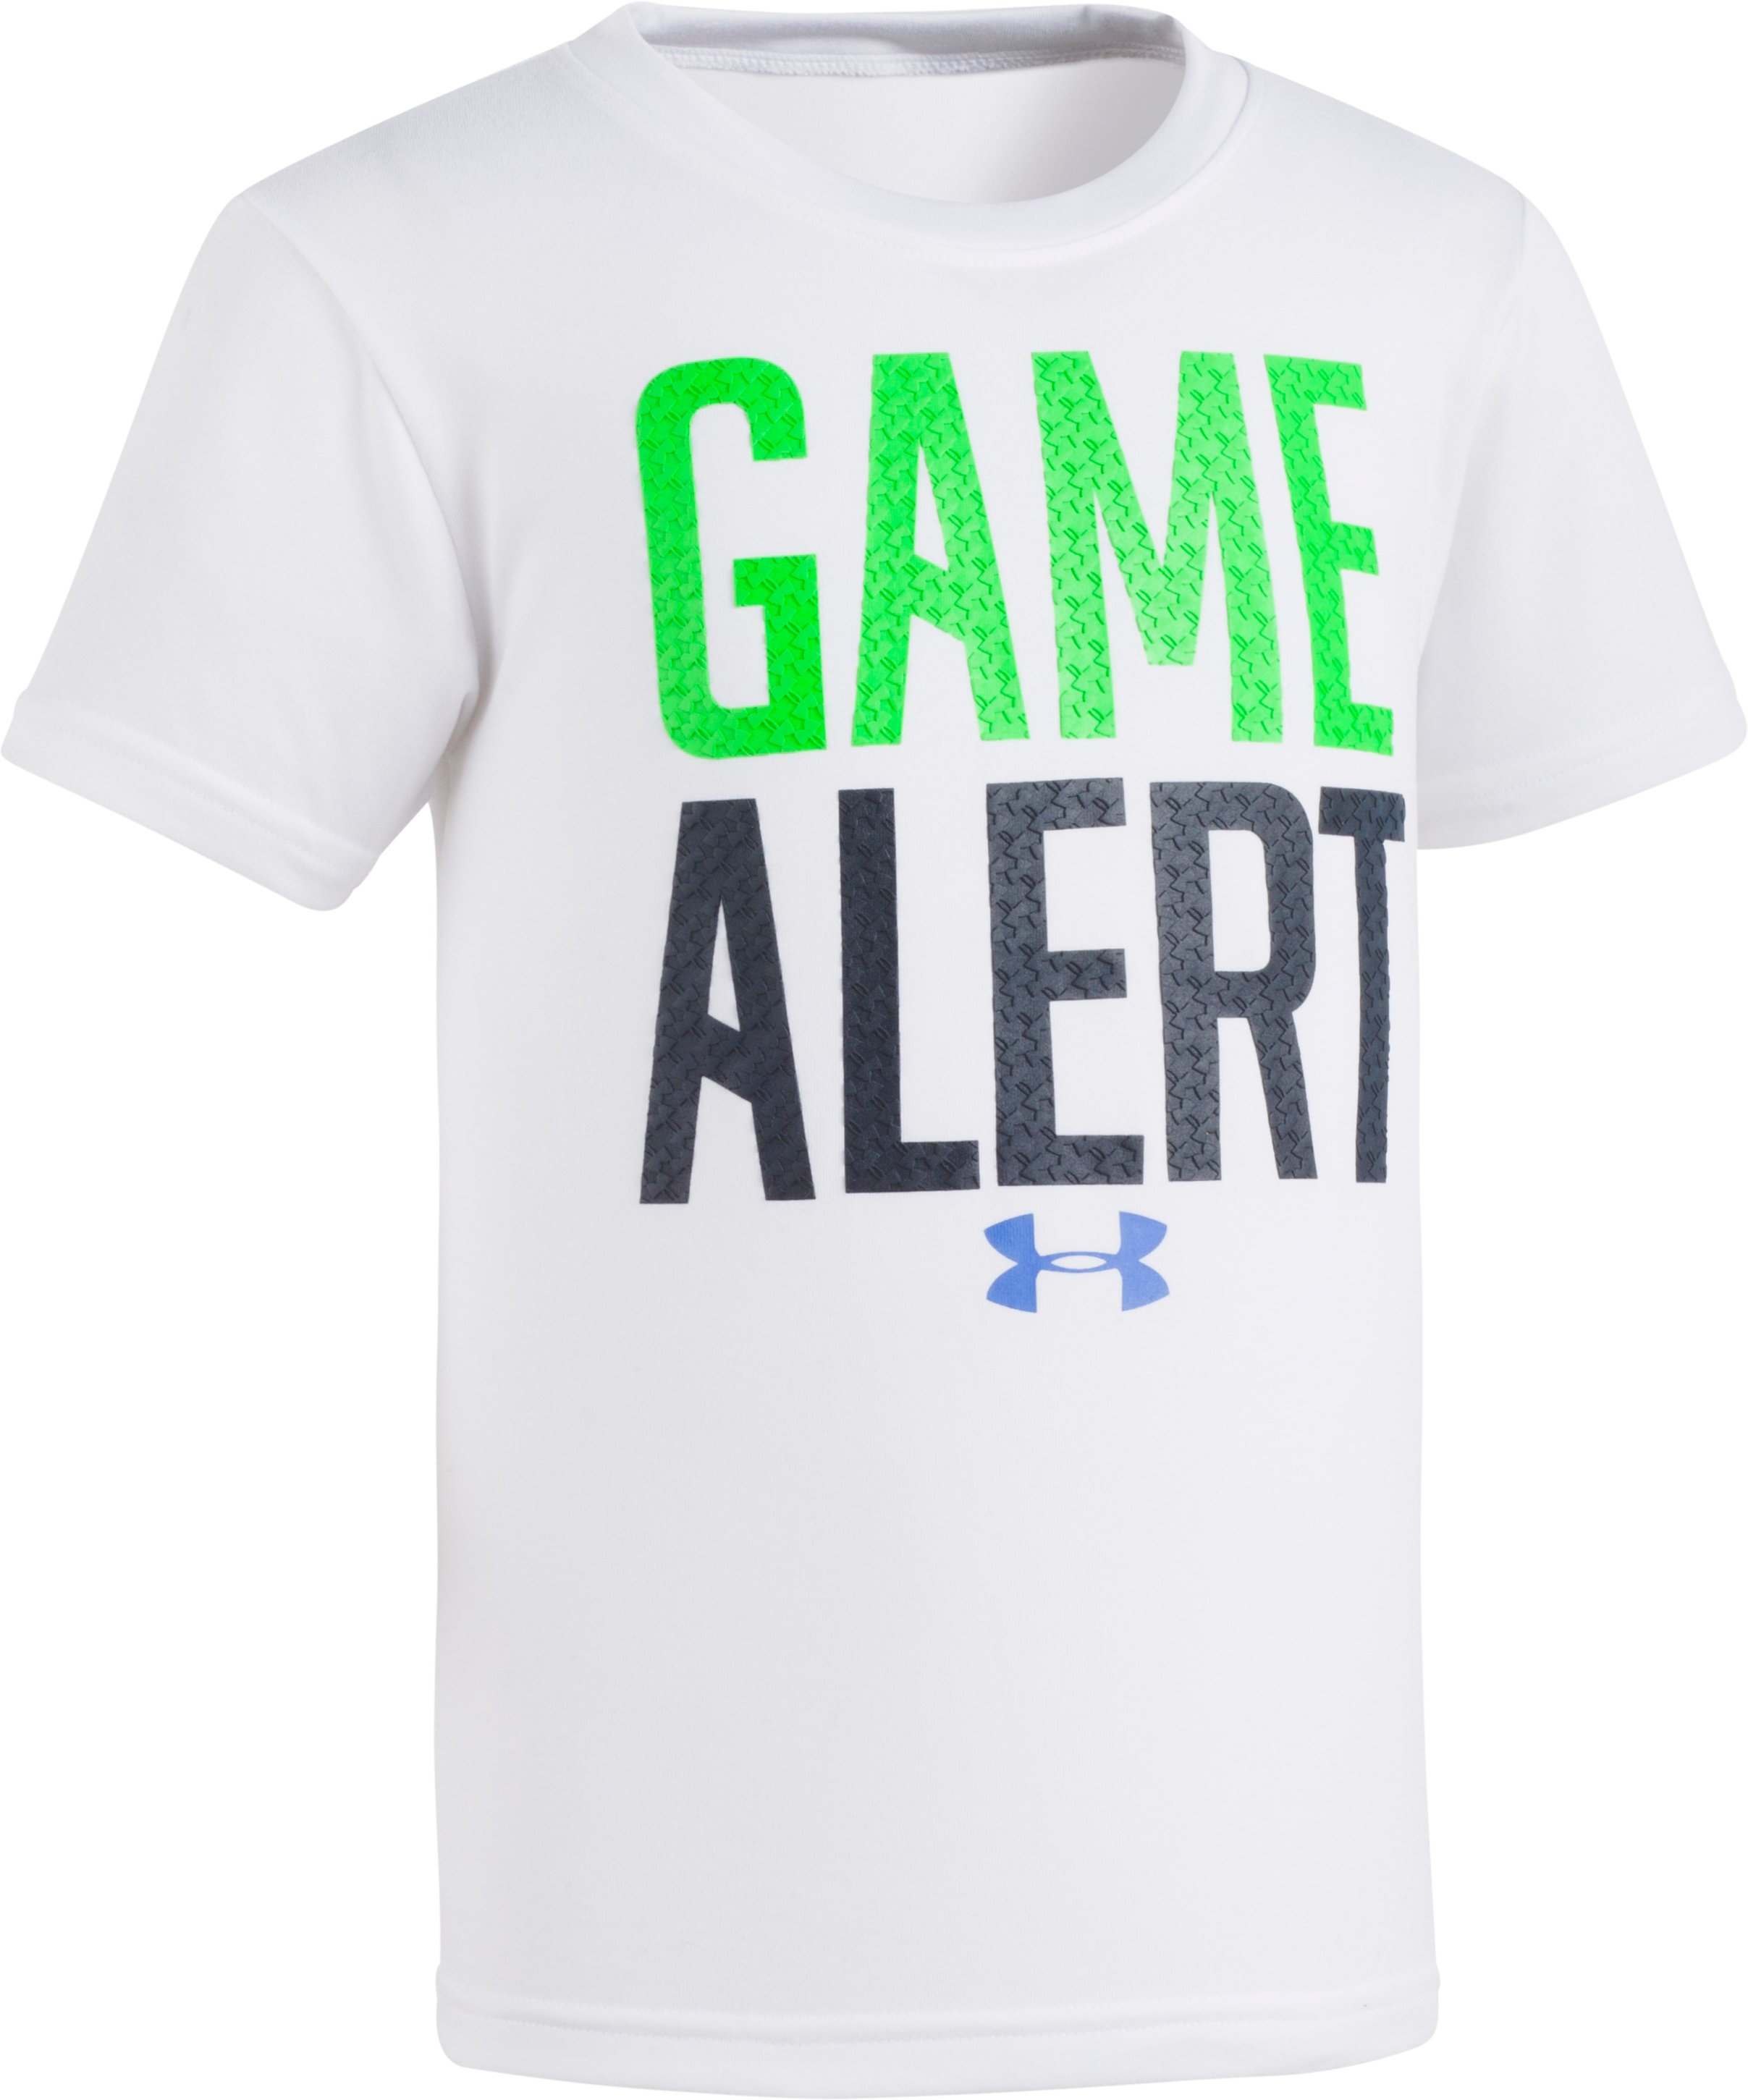 Boys' Pre-School UA Game Alert Short Sleeve, White